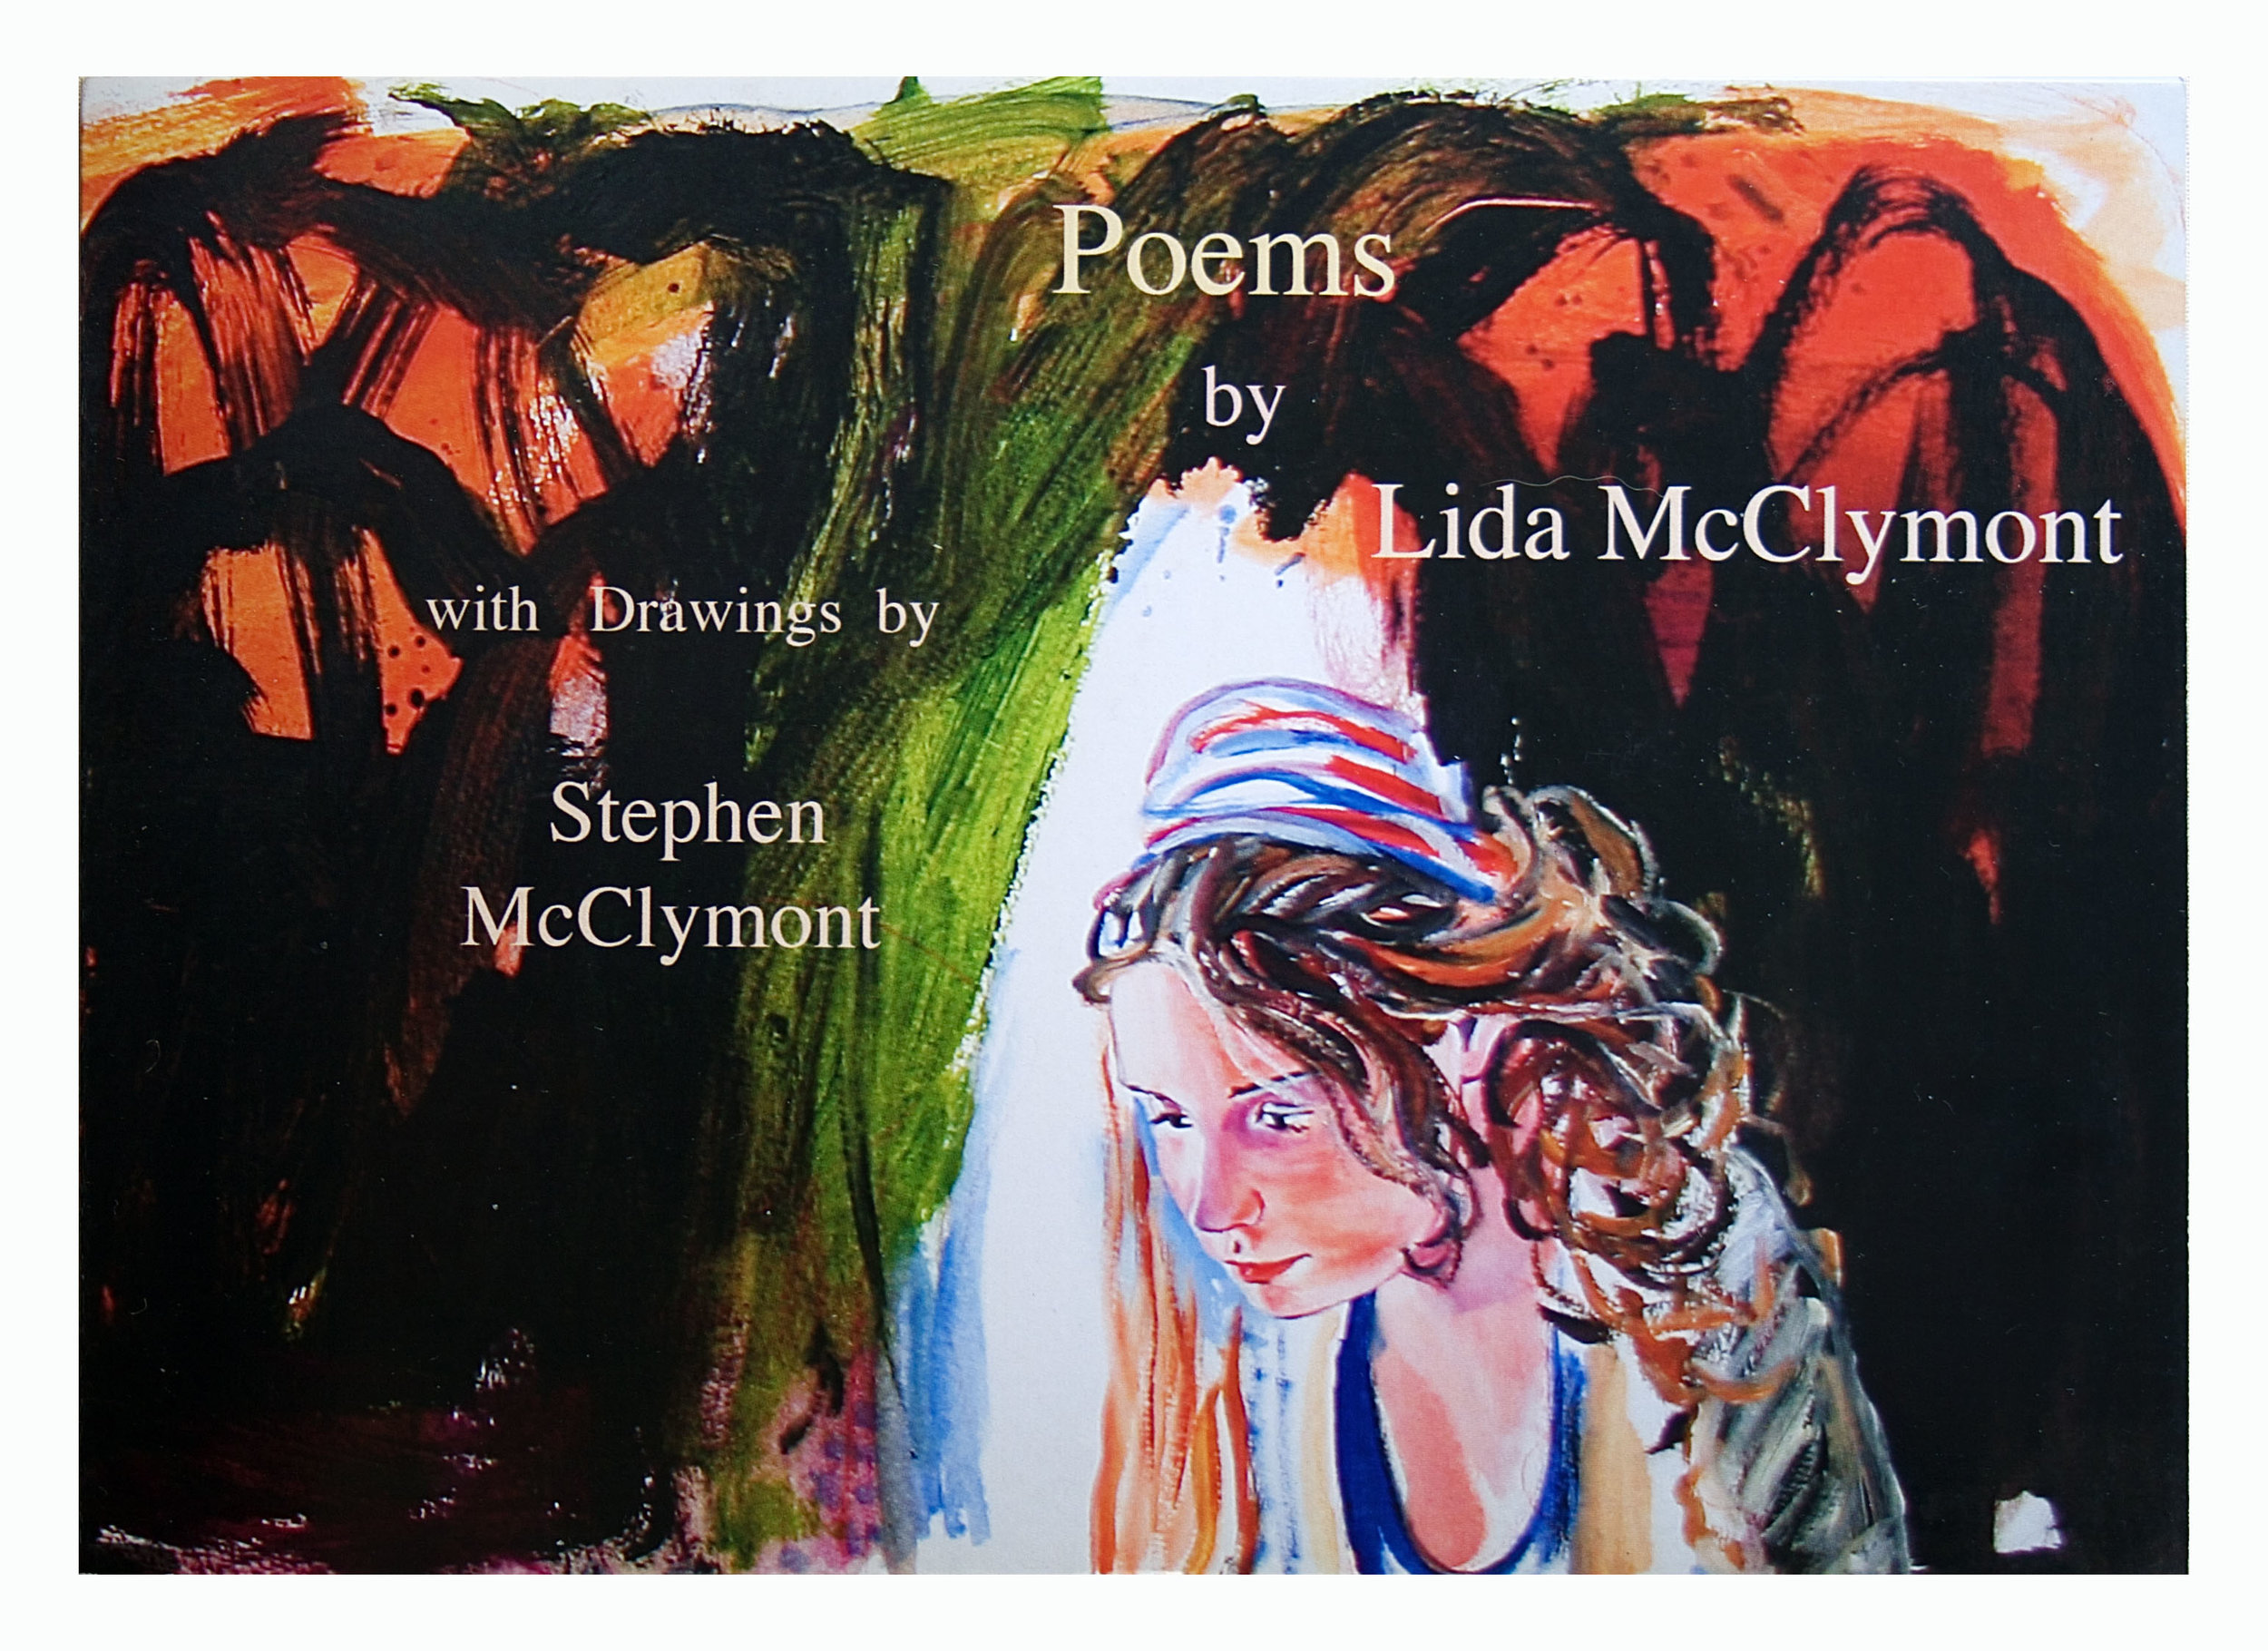 Lida's Poems by Lida McClymont